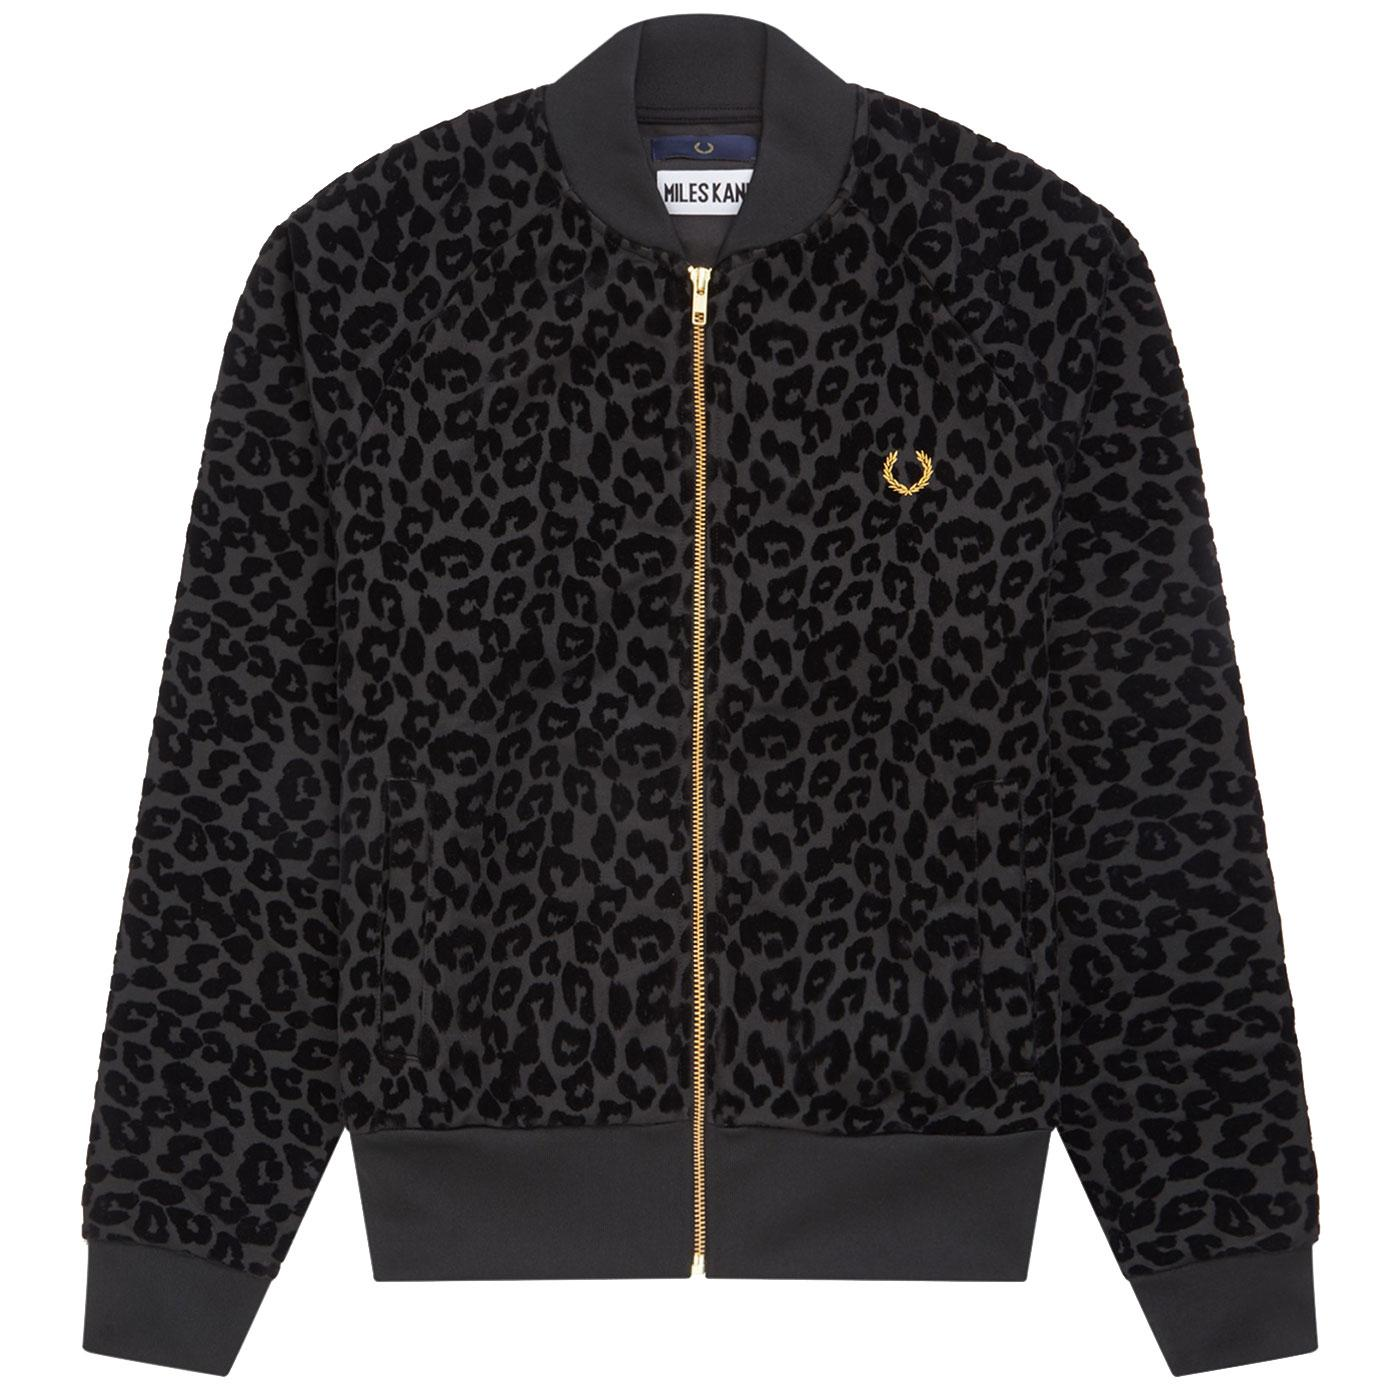 FRED PERRY X MILES KANE Leopard Print Track Jacket